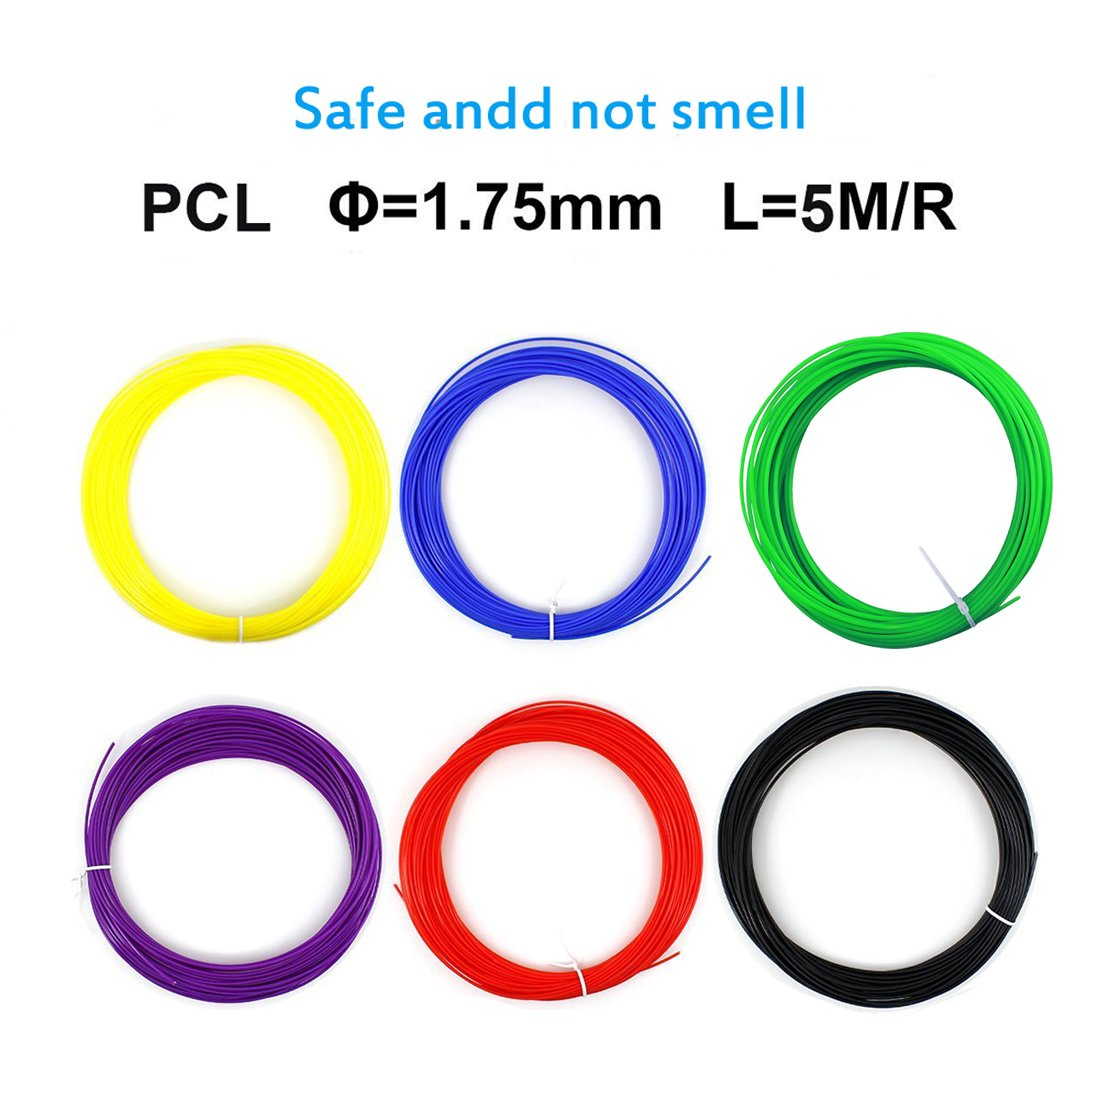 3D Printing Filament,CFTech 3D Pen Filament Refills 1.75mm PCL Material 240 Linear Feet 15 Color Plastic Doodle Supplies Kit Work with 3D Painting Pen and Printer (15 Pack)